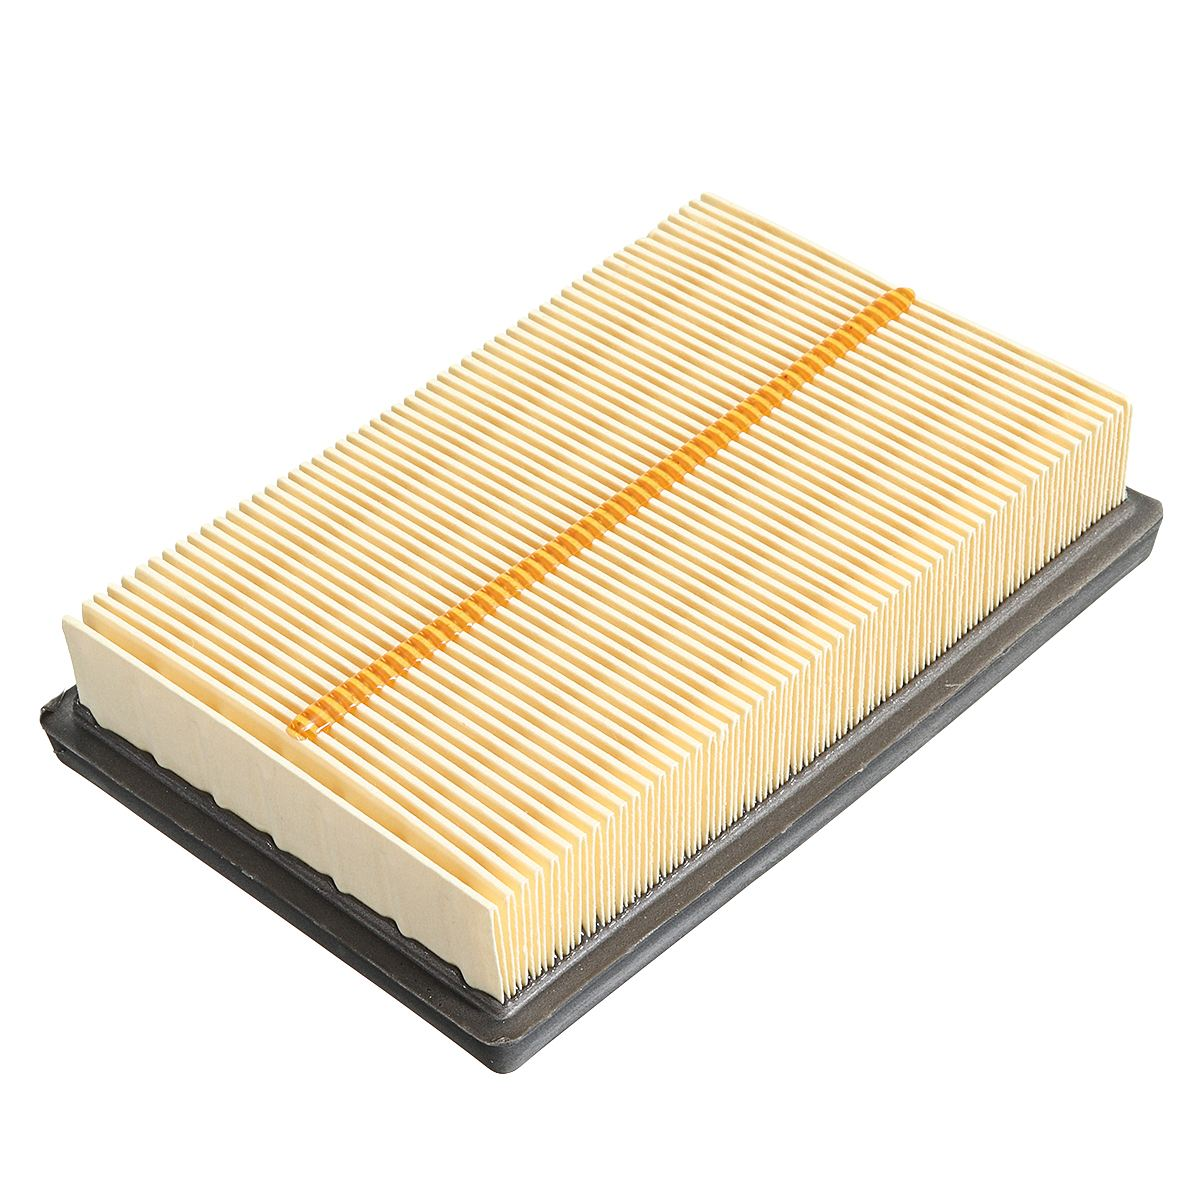 1pc new car cabin engine air filter for toyota prius c 2012 2014 17801